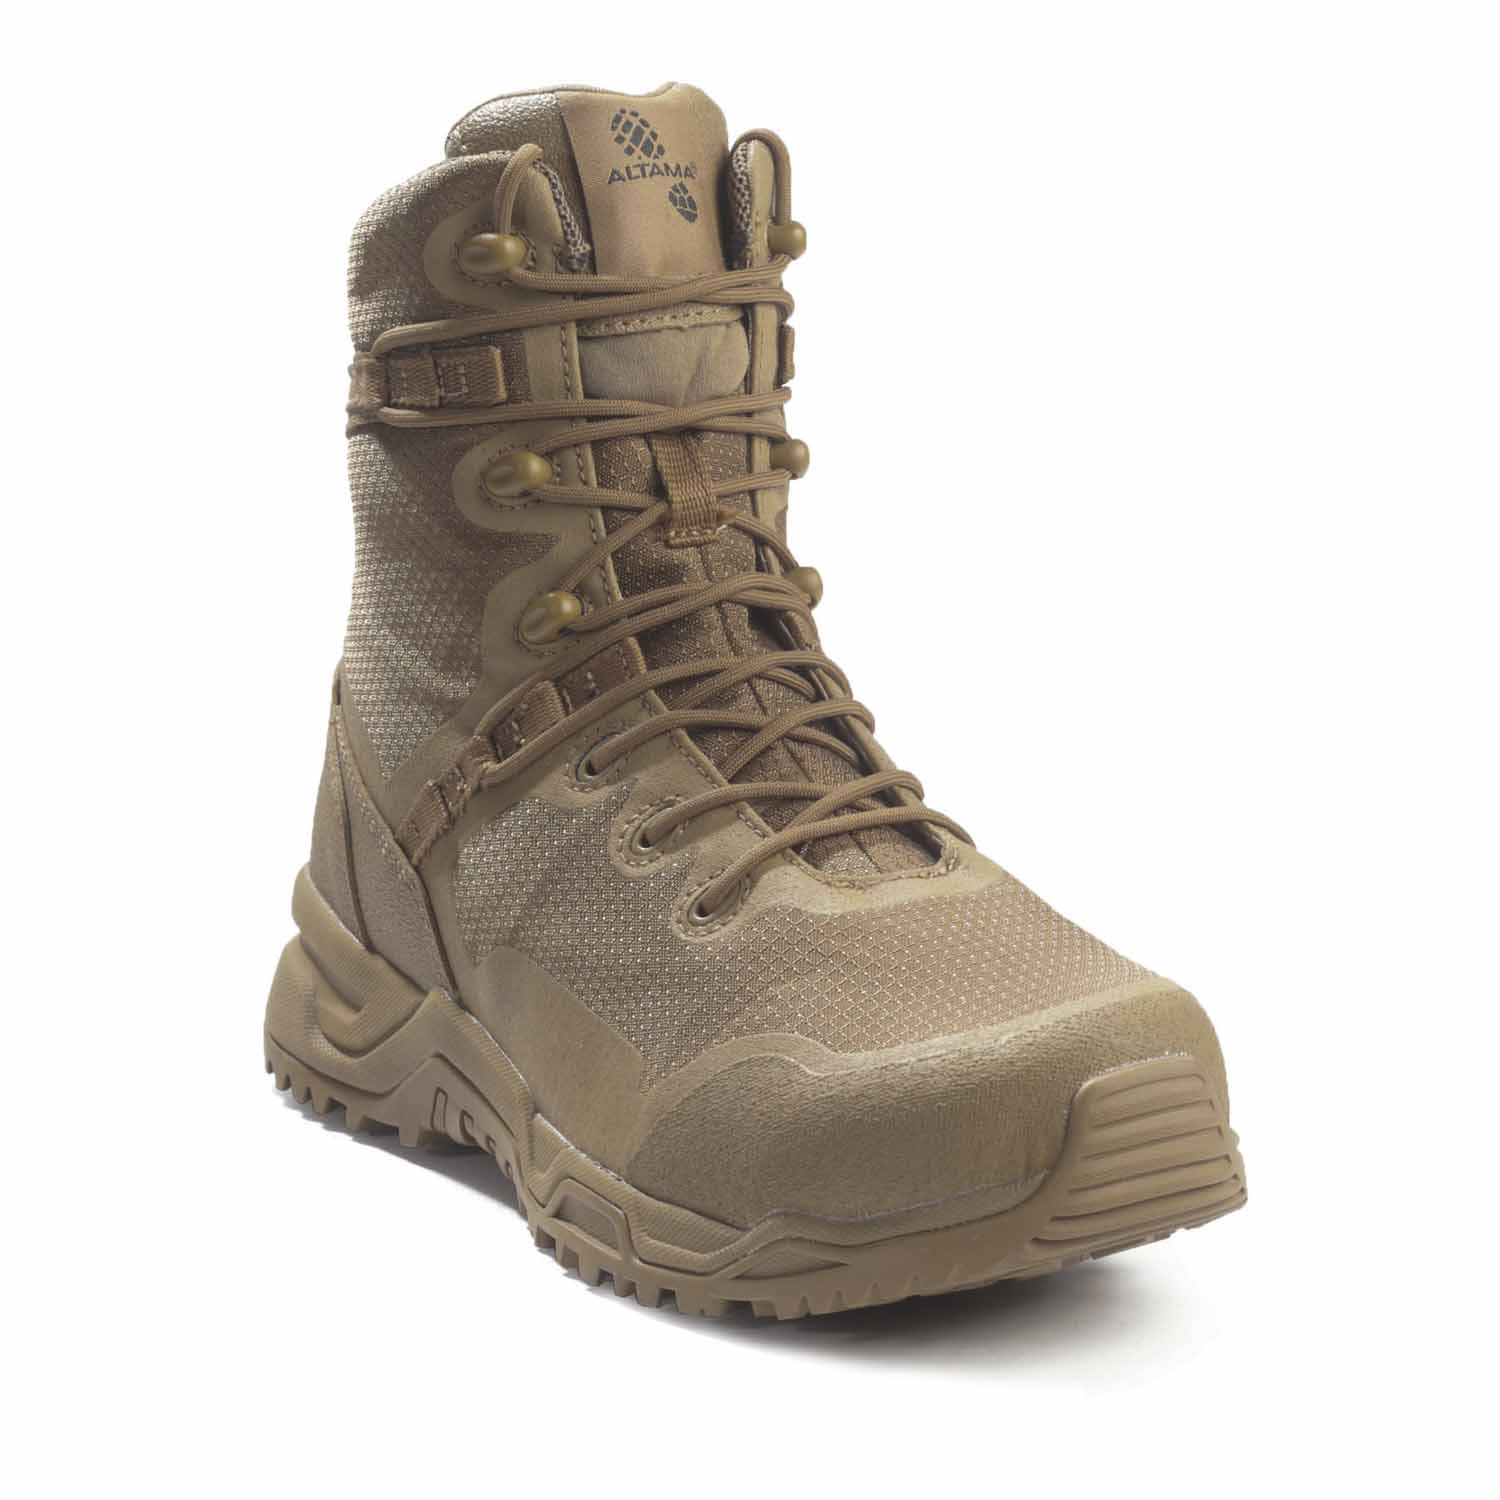 "Altama Raptor 8"" Safety Toe Boot"